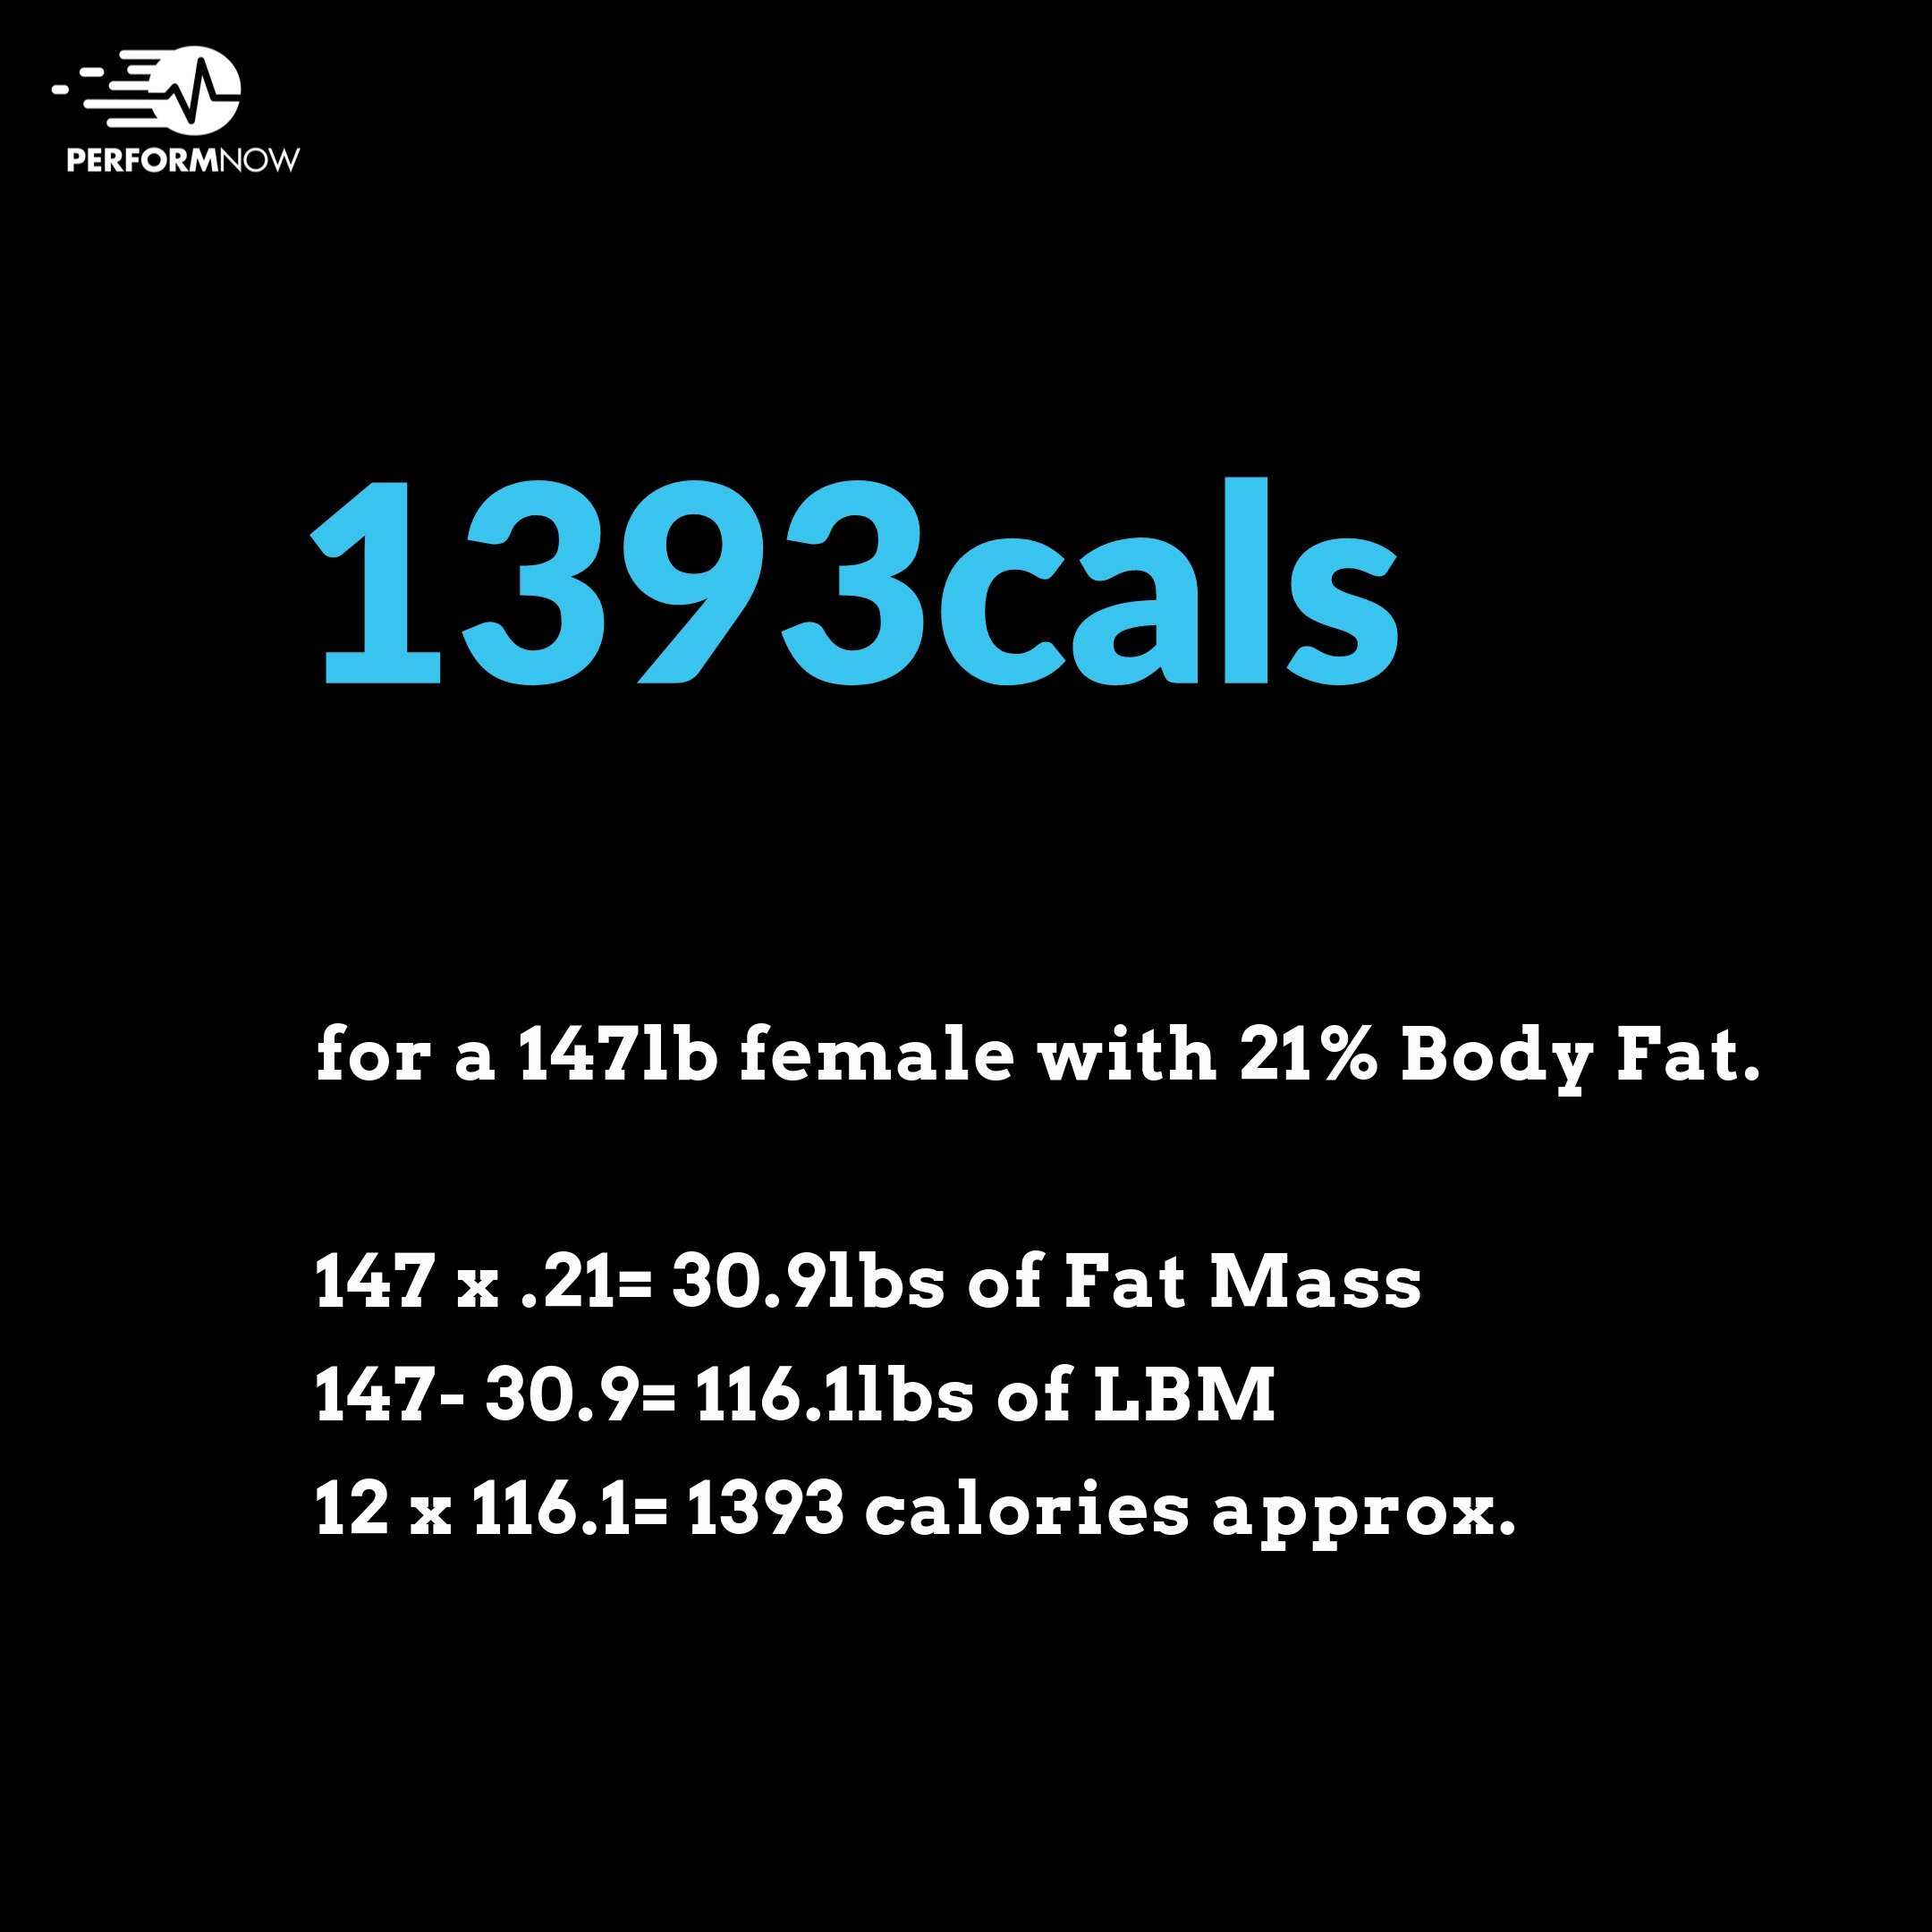 Example for 147lbs Female with 21% Body Fat